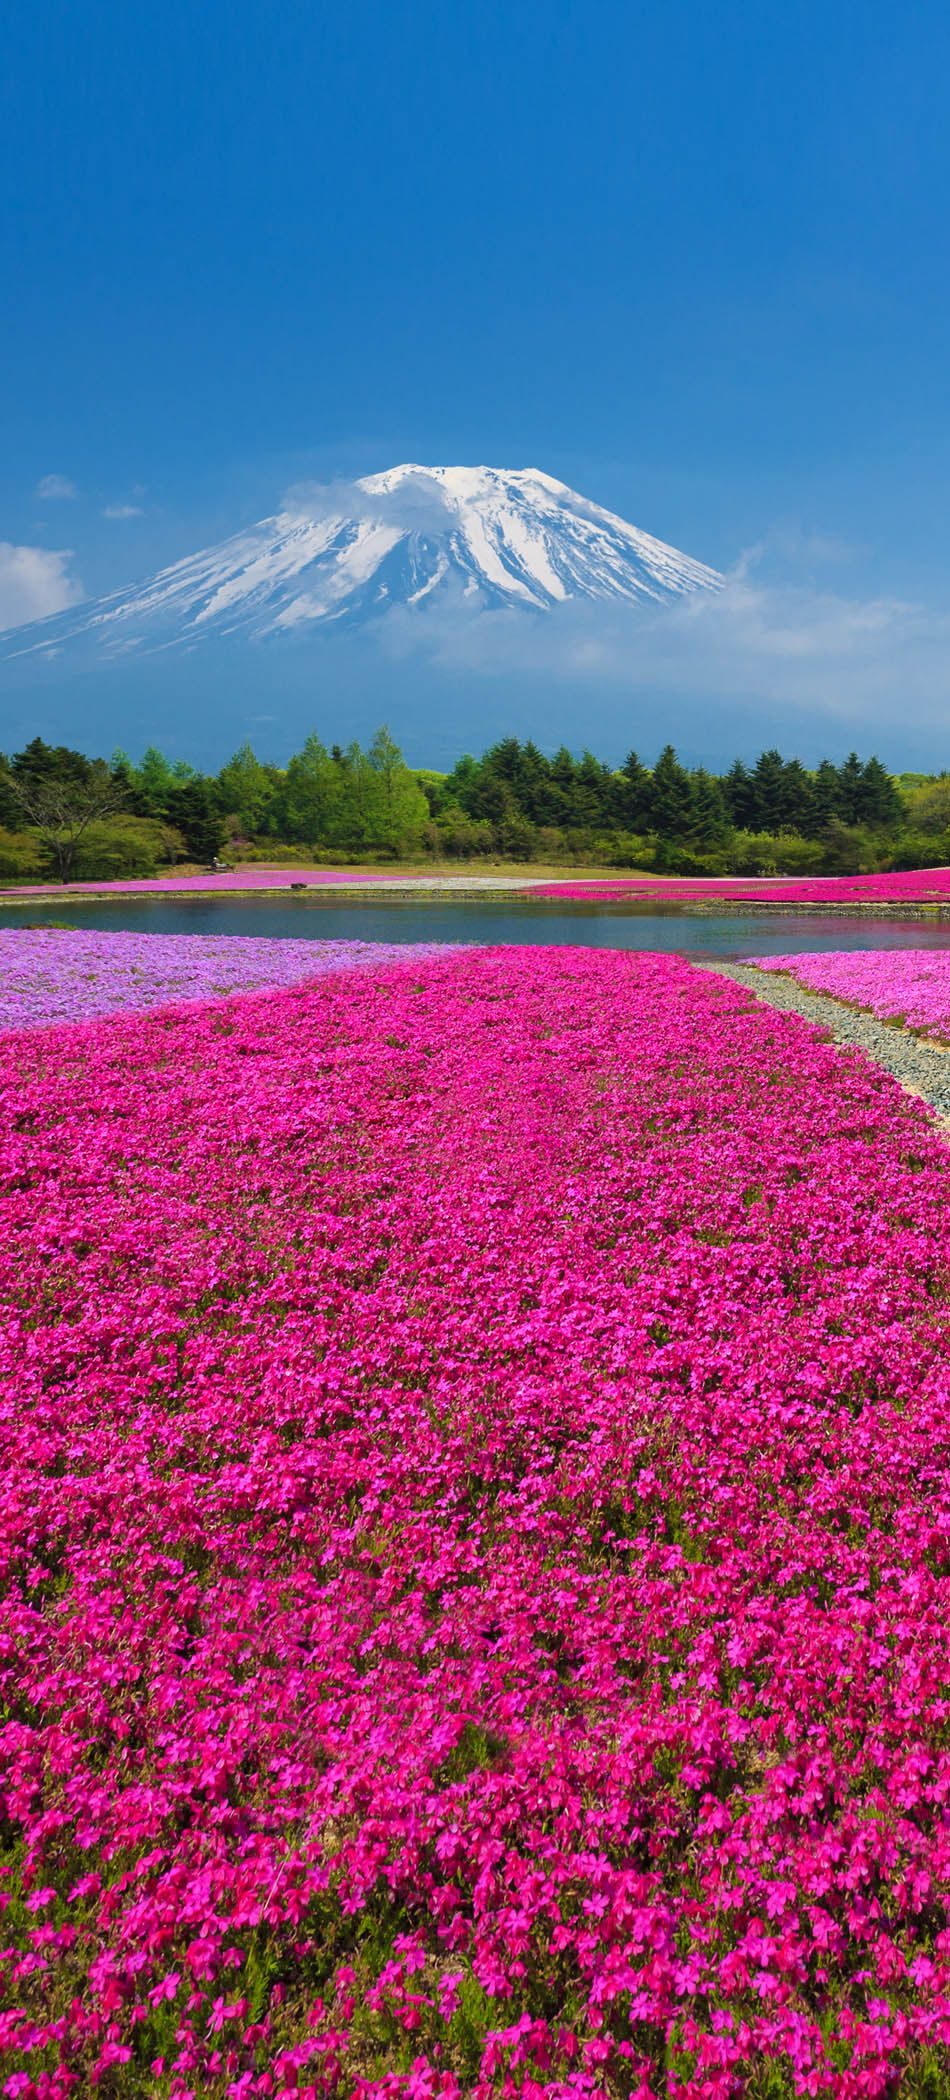 Mount Fuji With The Field Of Pink Moss At Shibazakura Festival